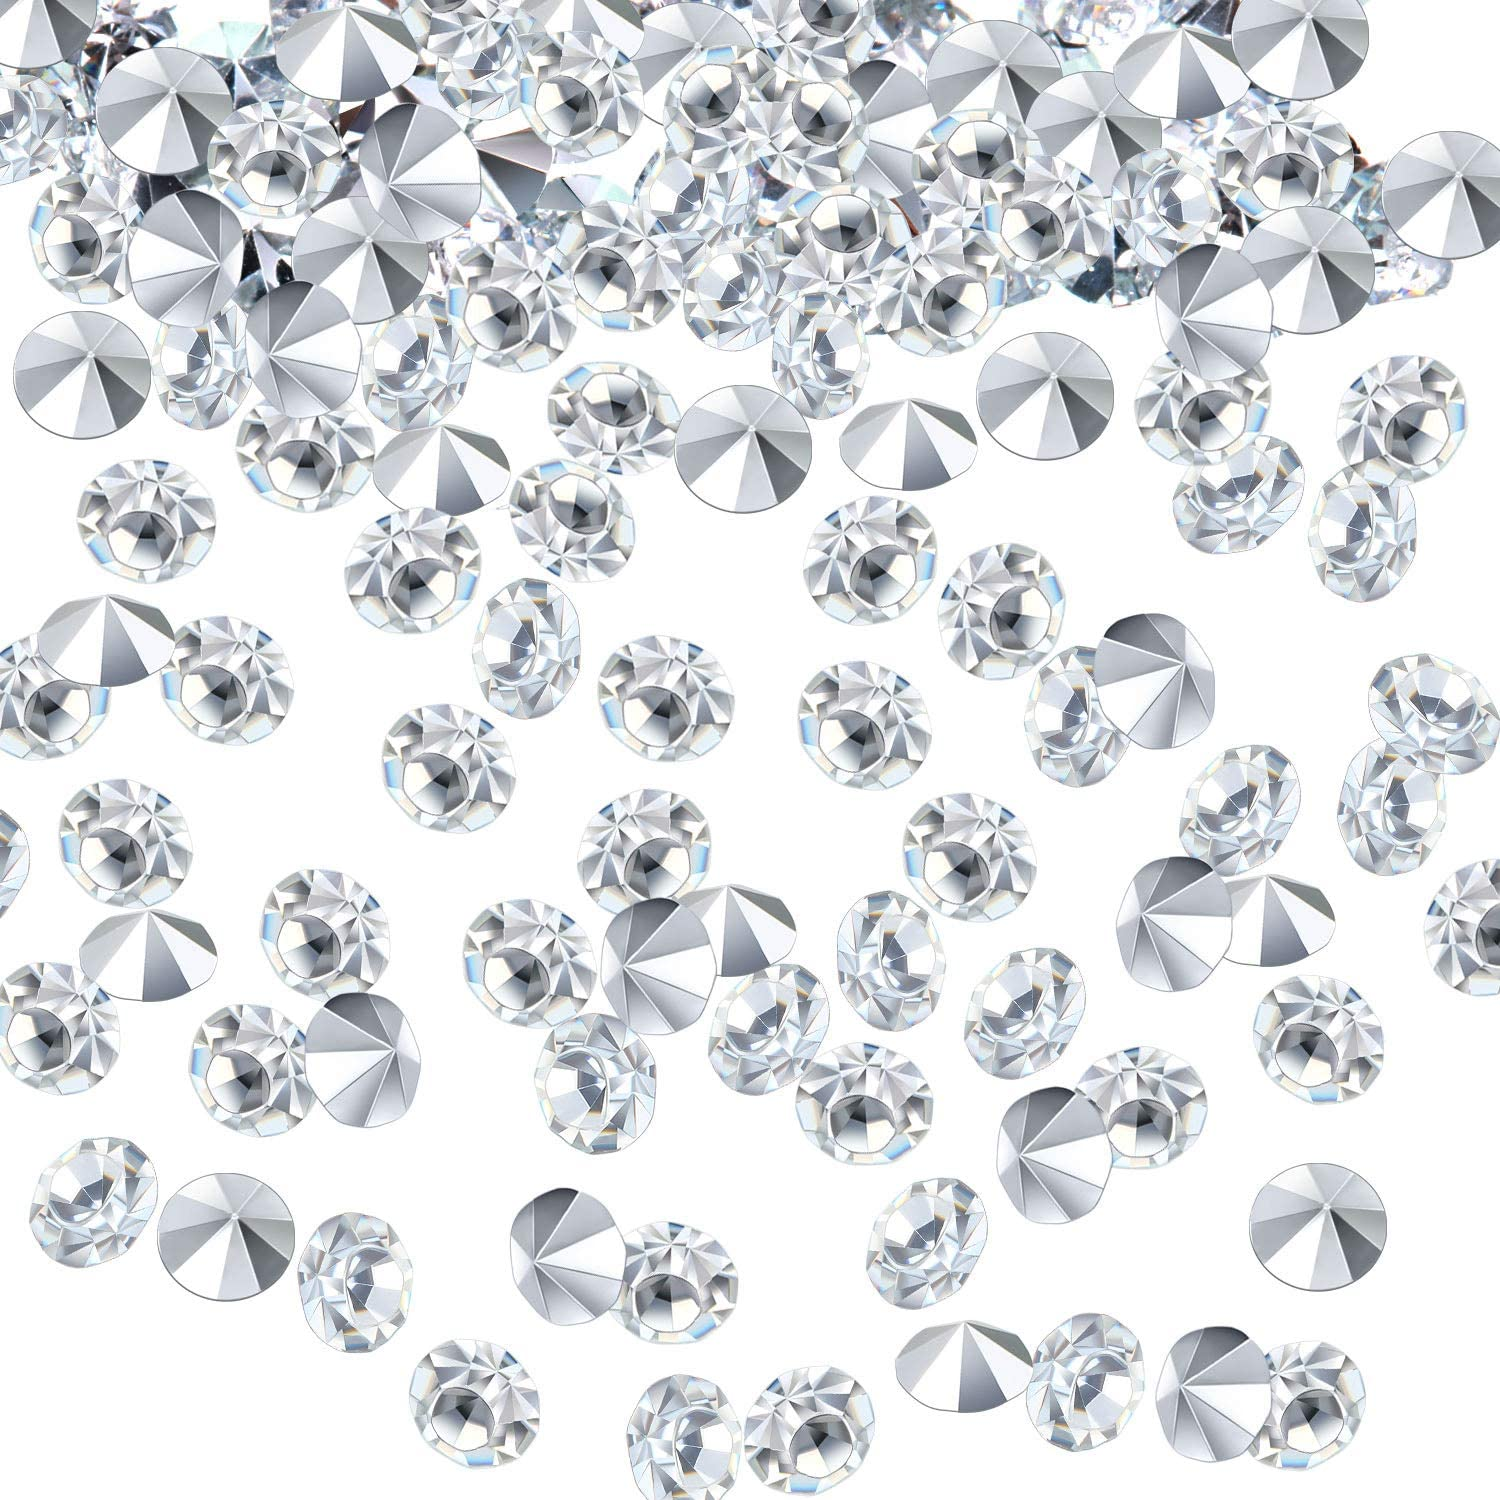 5000 pcs//Pack Wedding Table Scatter Confetti Crystals Acrylic Diamonds 6 mm Rhinestones for Wedding Bridal Shower Vase Beads Decorations 6mm, Bisque